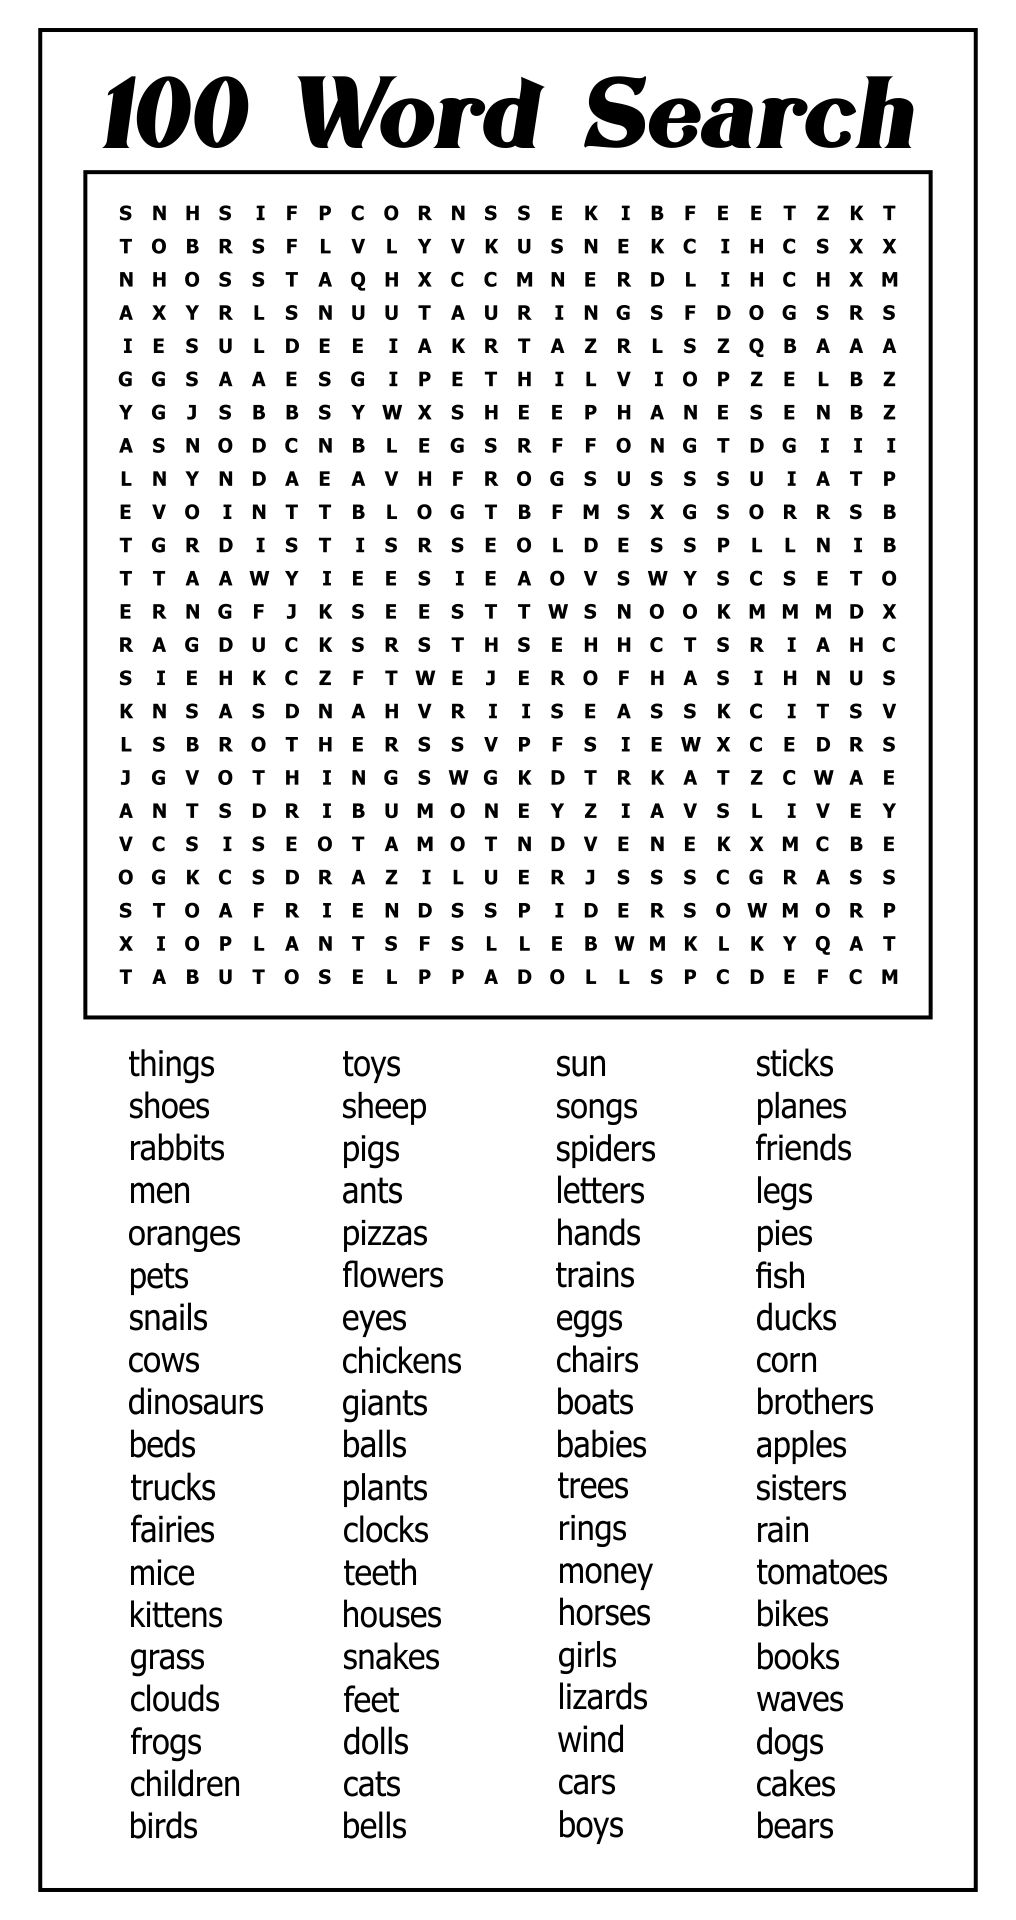 4 Images of Mega Word Searches Printable